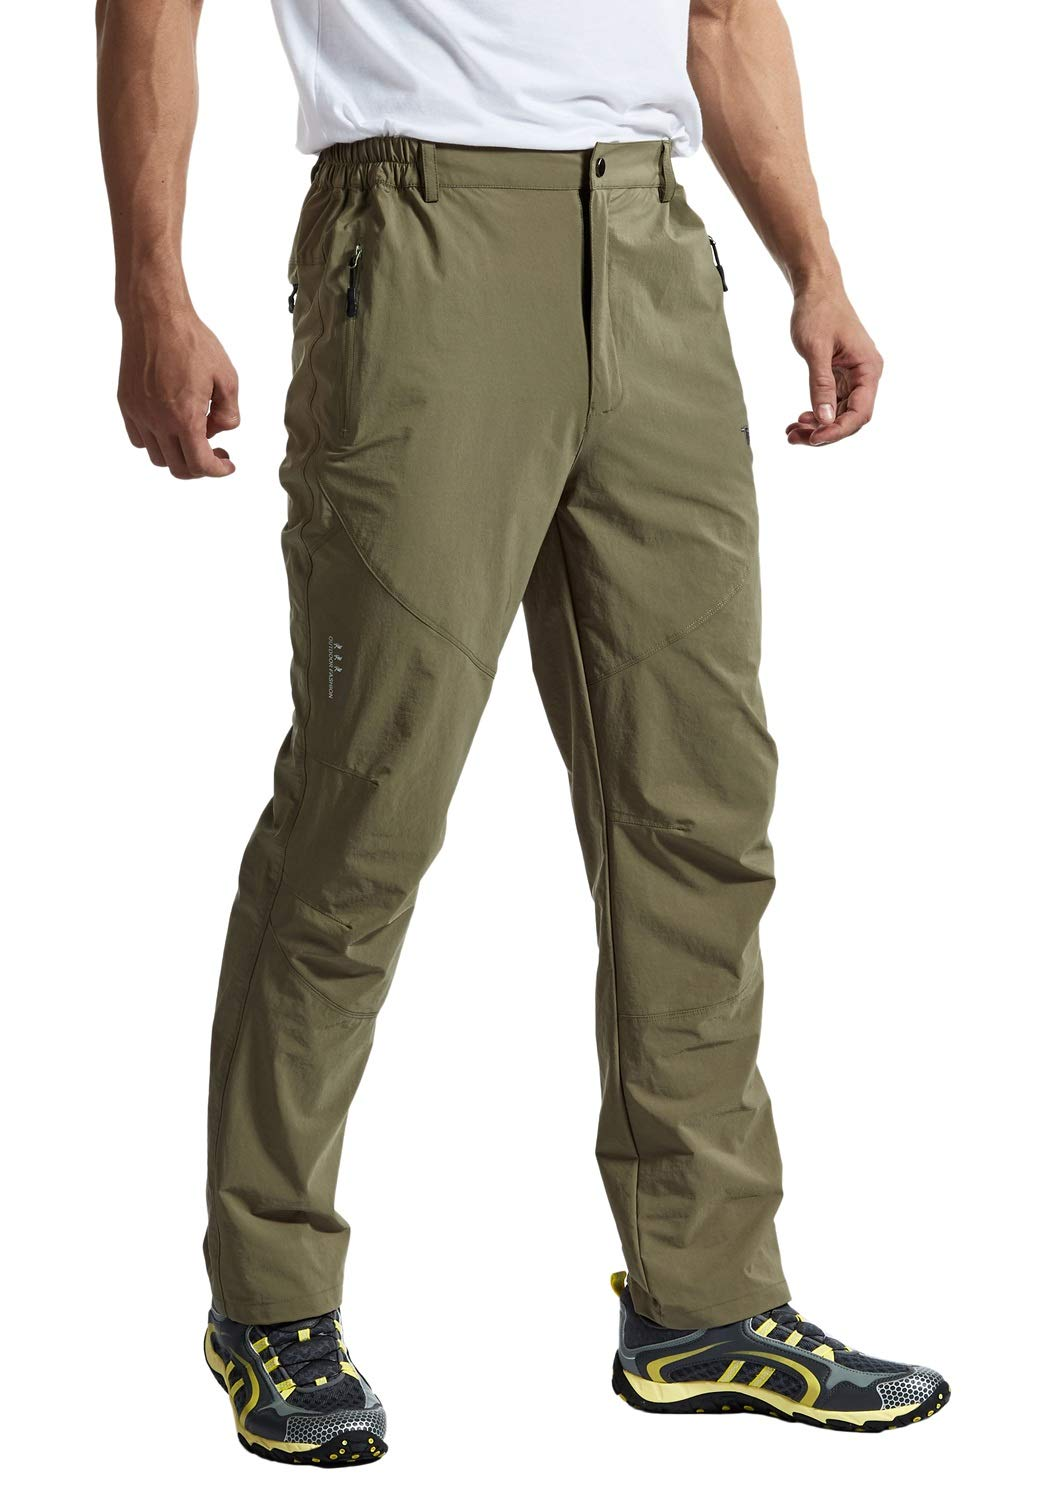 Rdruko Men's Outdoor Waterproof Stretch Hiking Climbing Mountain Travel Cargo Work Pants with Pockets